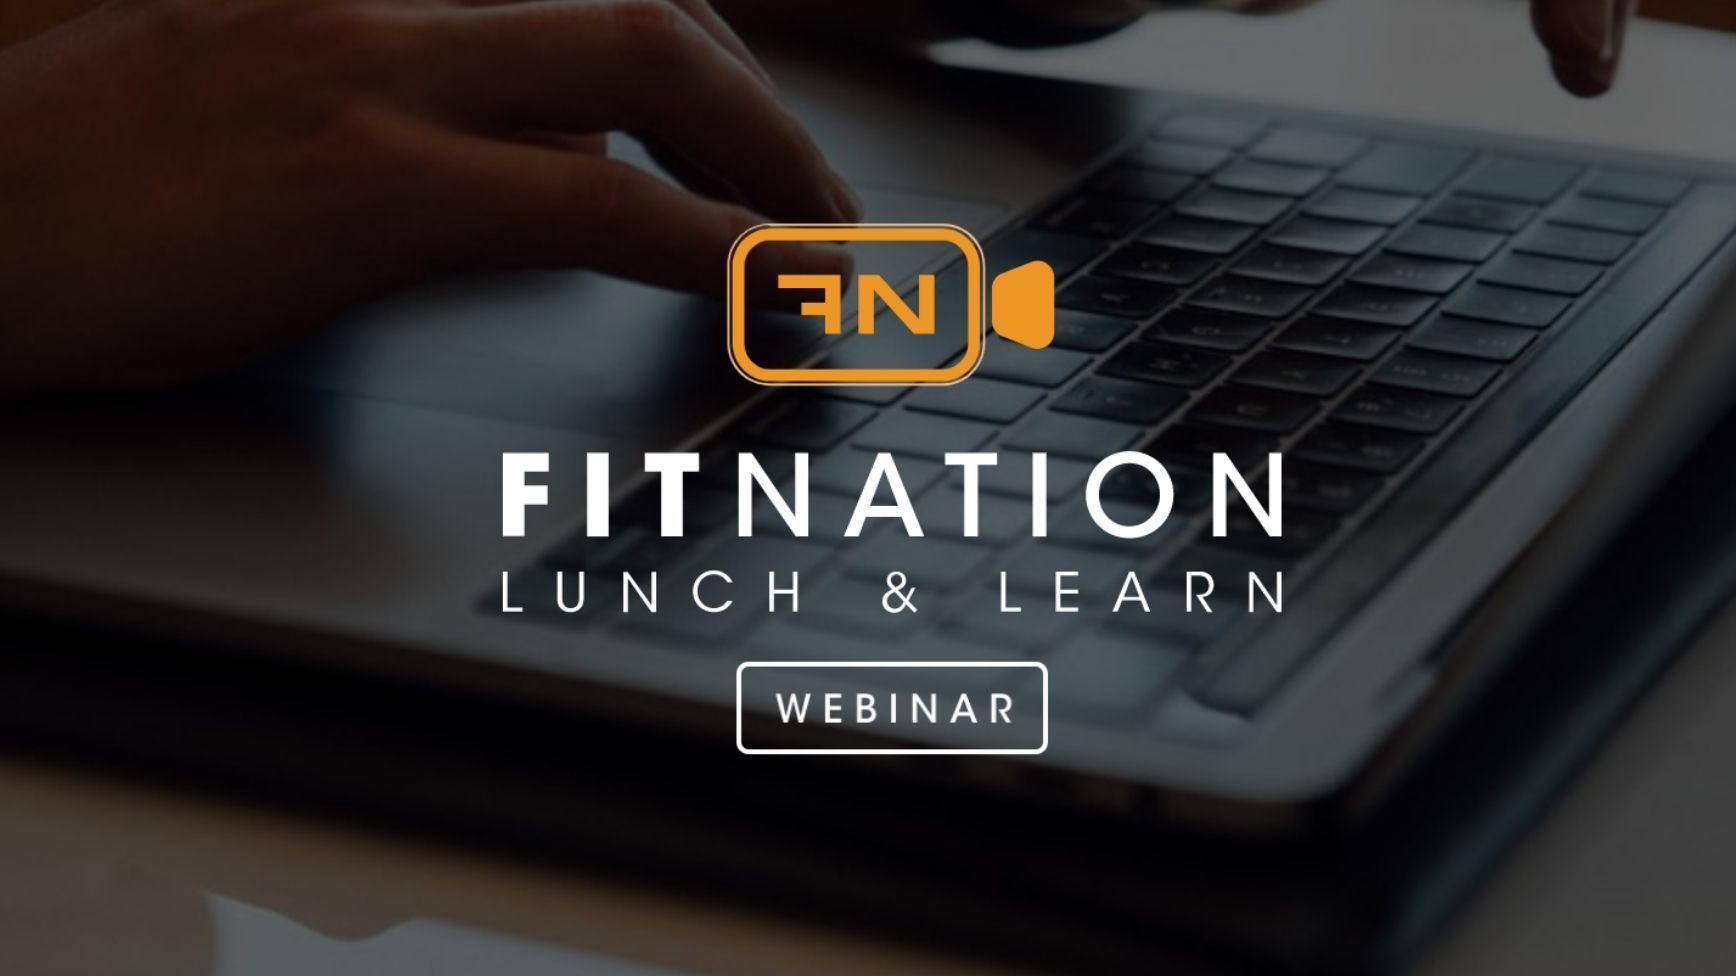 FitNation: Lunch and Learn